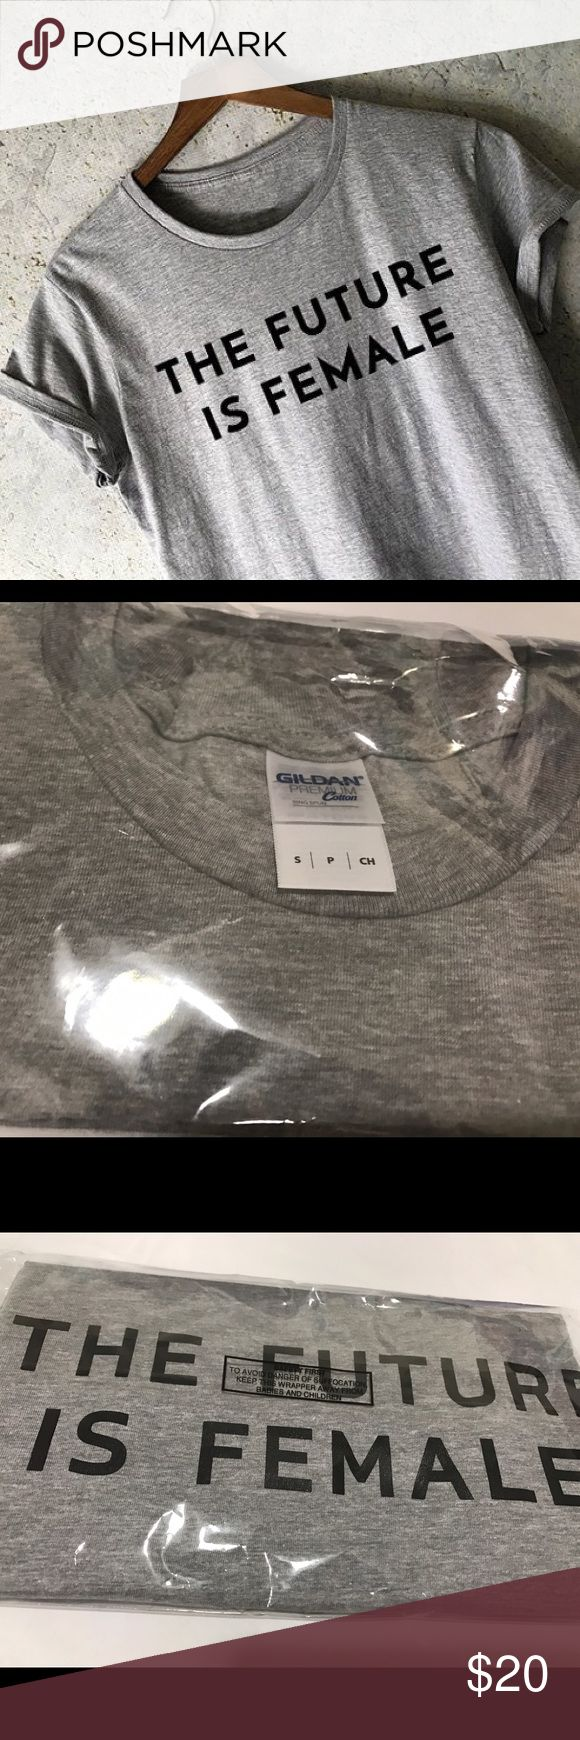 """NWT!! Small """"The Future is Female"""" Cotton T-shirt Brand new unopened THE FUTURE IS FEMALE Gray short sleeved t-shirt in size small. Nasty Gal tagged for exposure. Brand is Gildan. Price as listed or best offer. Nasty Gal Tops Tees - Short Sleeve"""